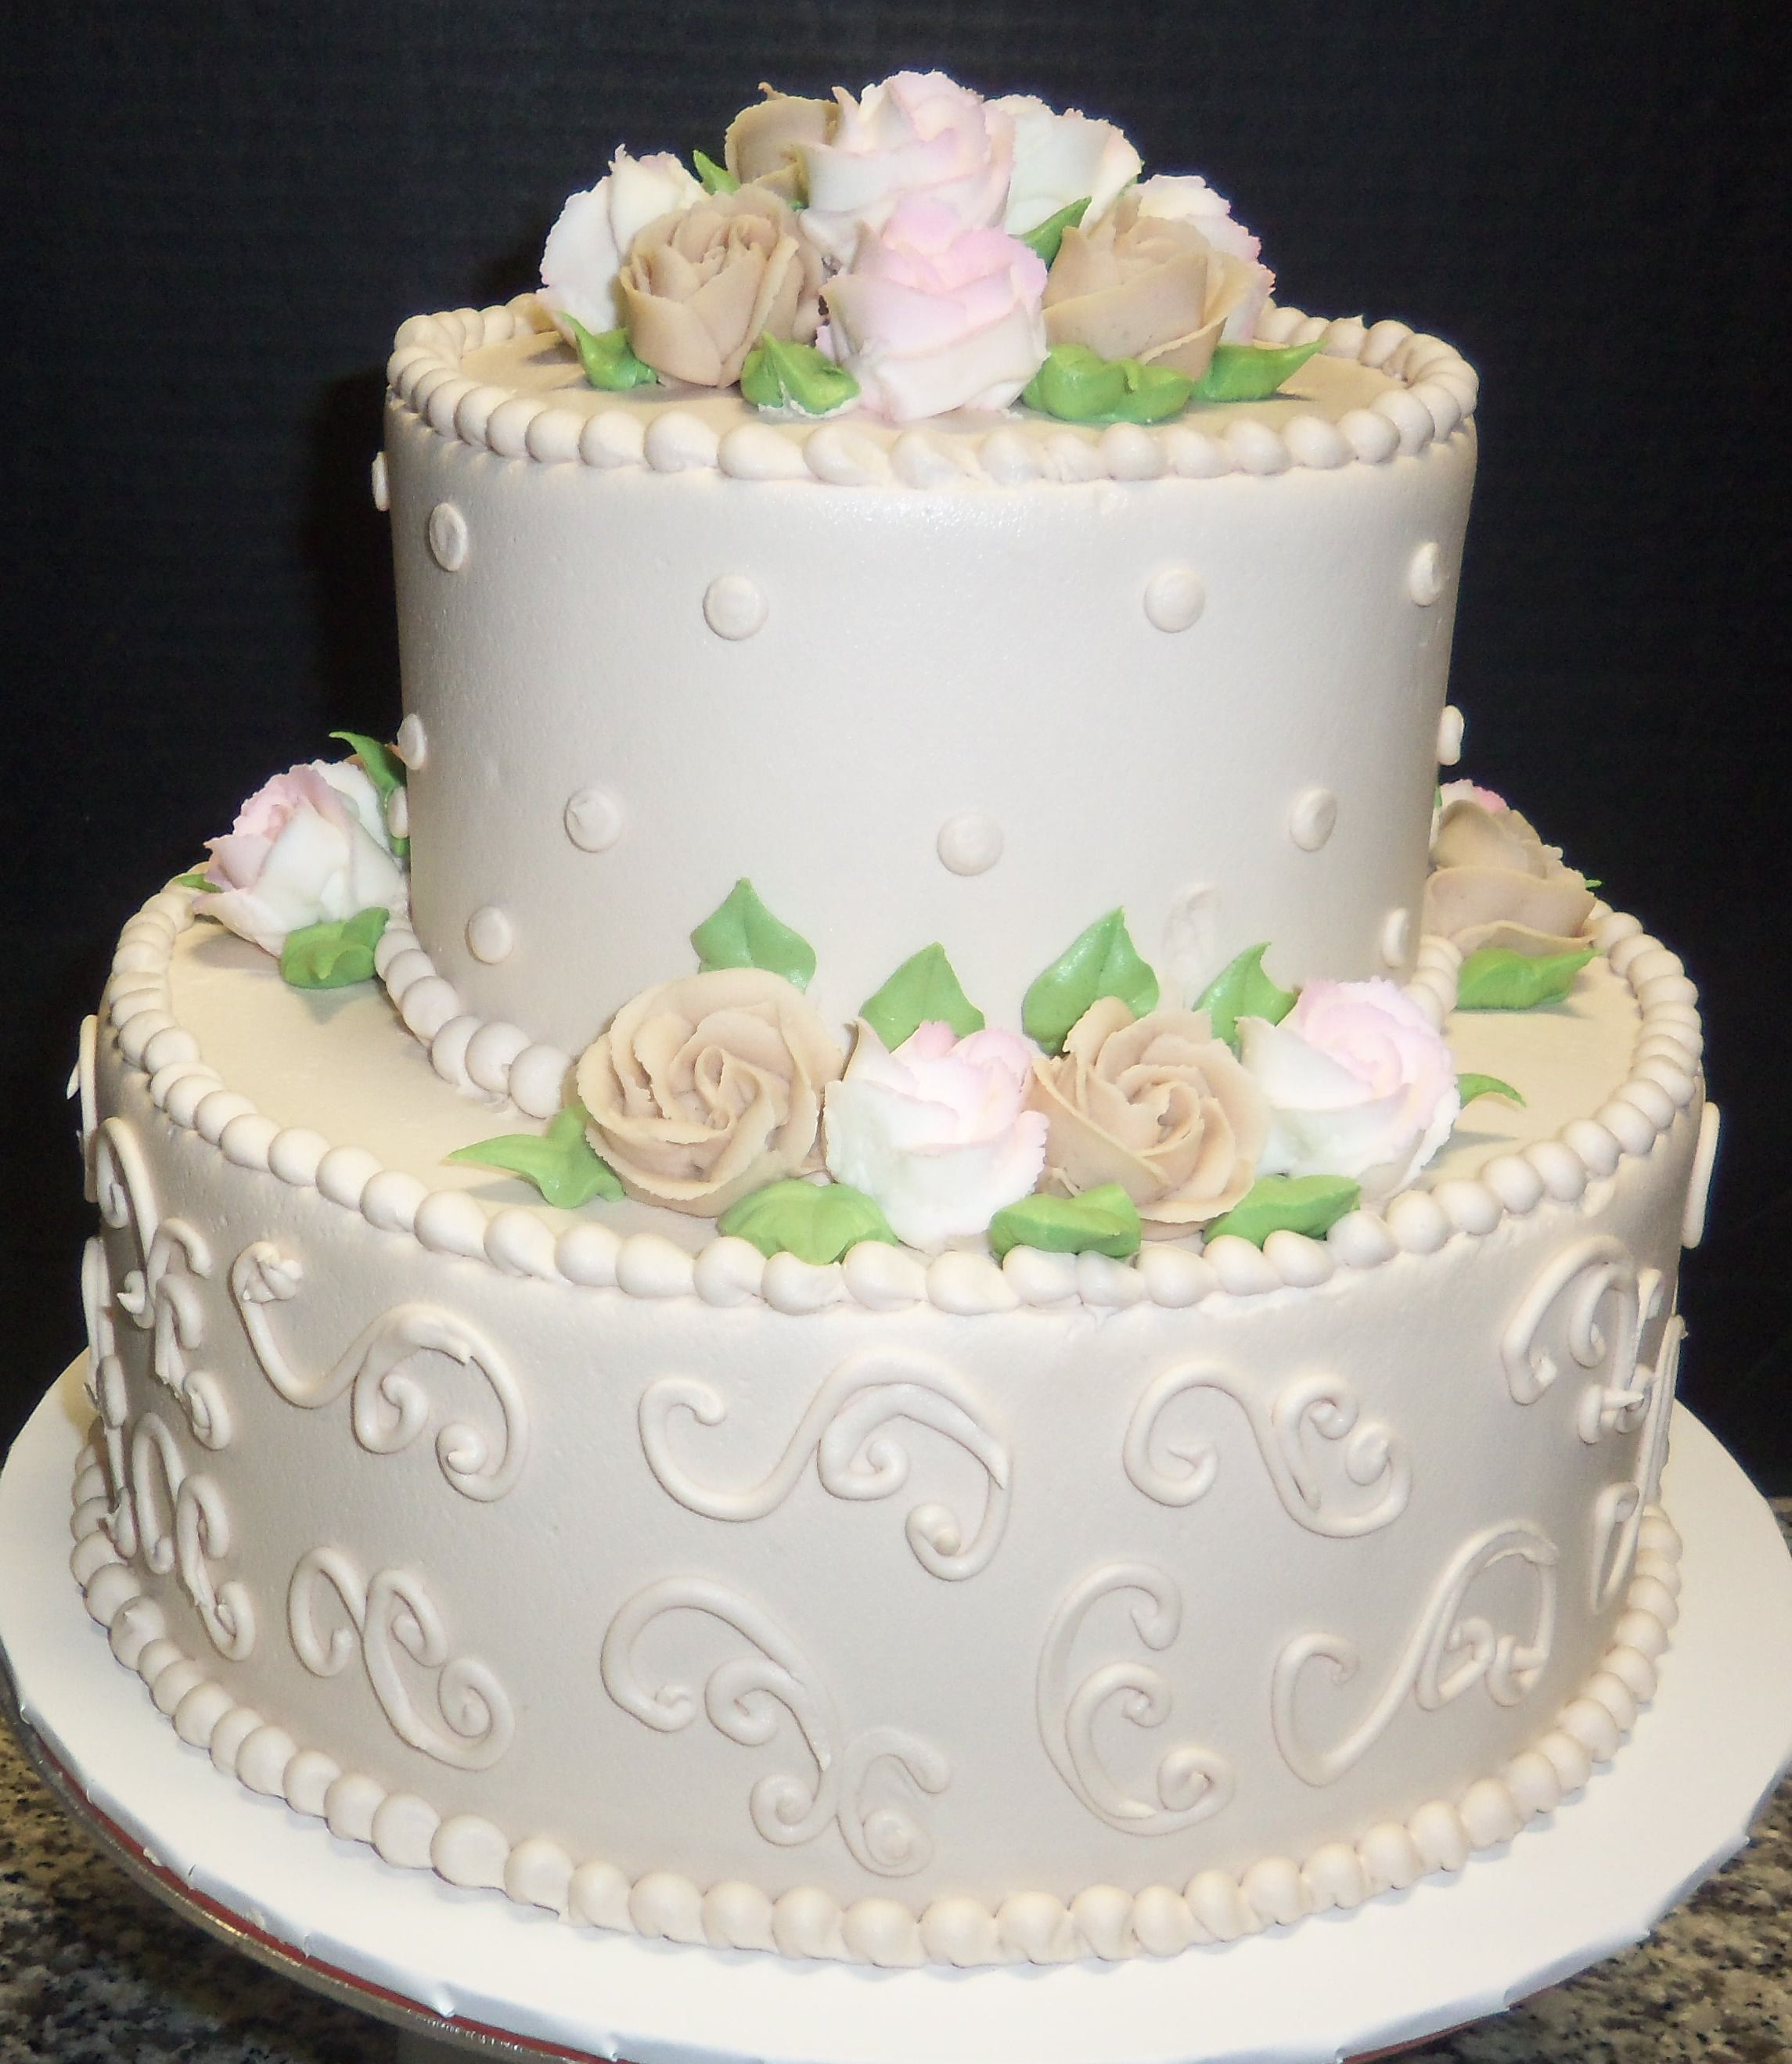 White Buttercream Iced 2 Tier Cake With Beige And White Roses